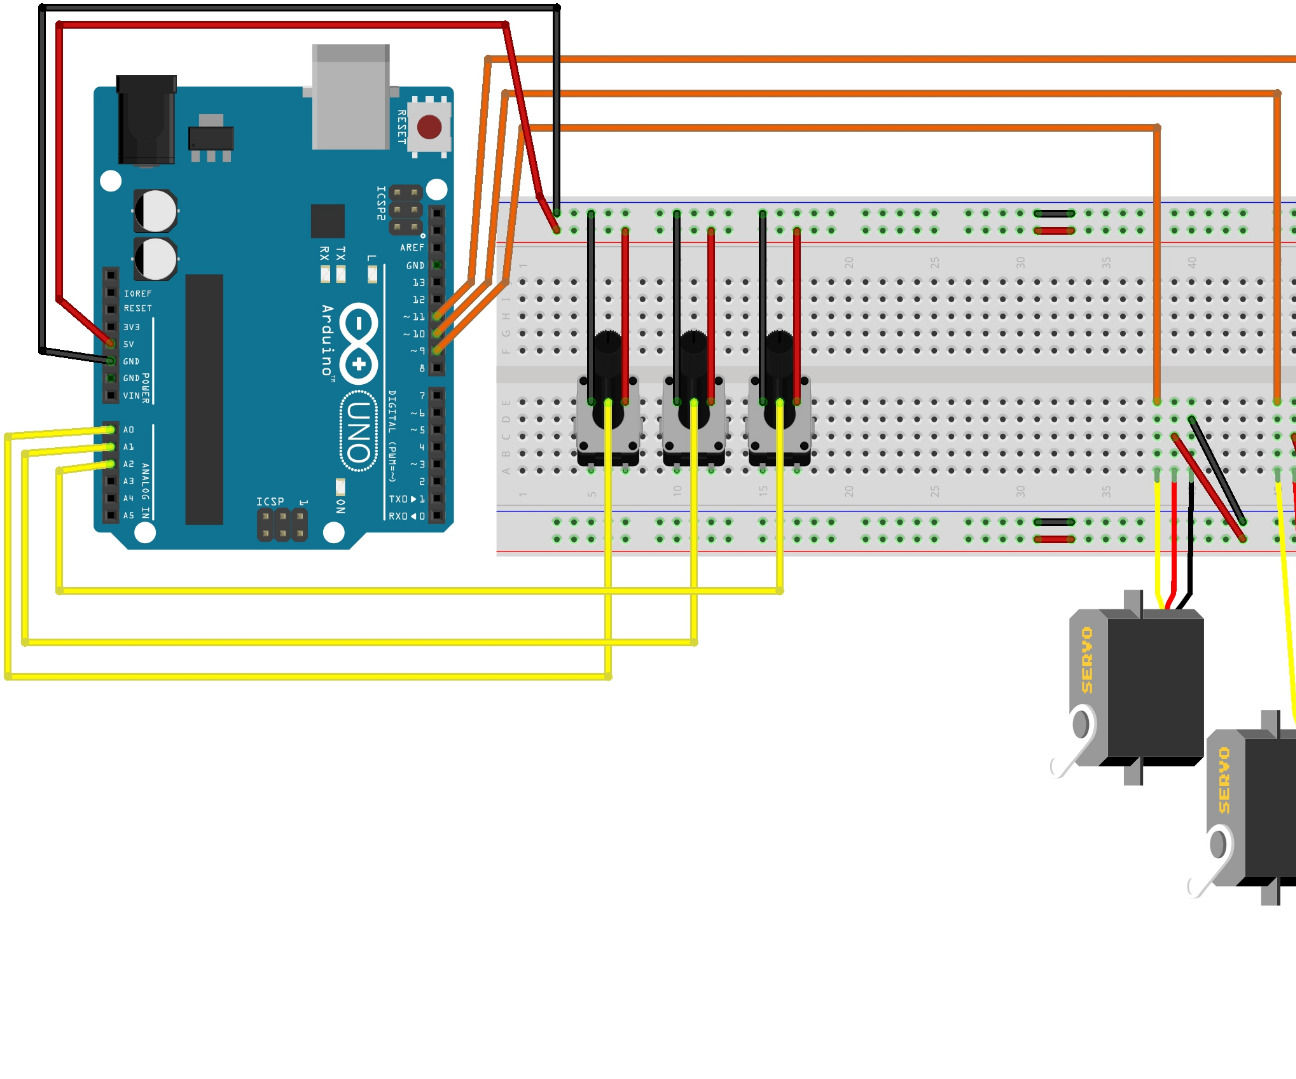 small resolution of controlling 3 servo motors with 3 potentiometers and an arduino